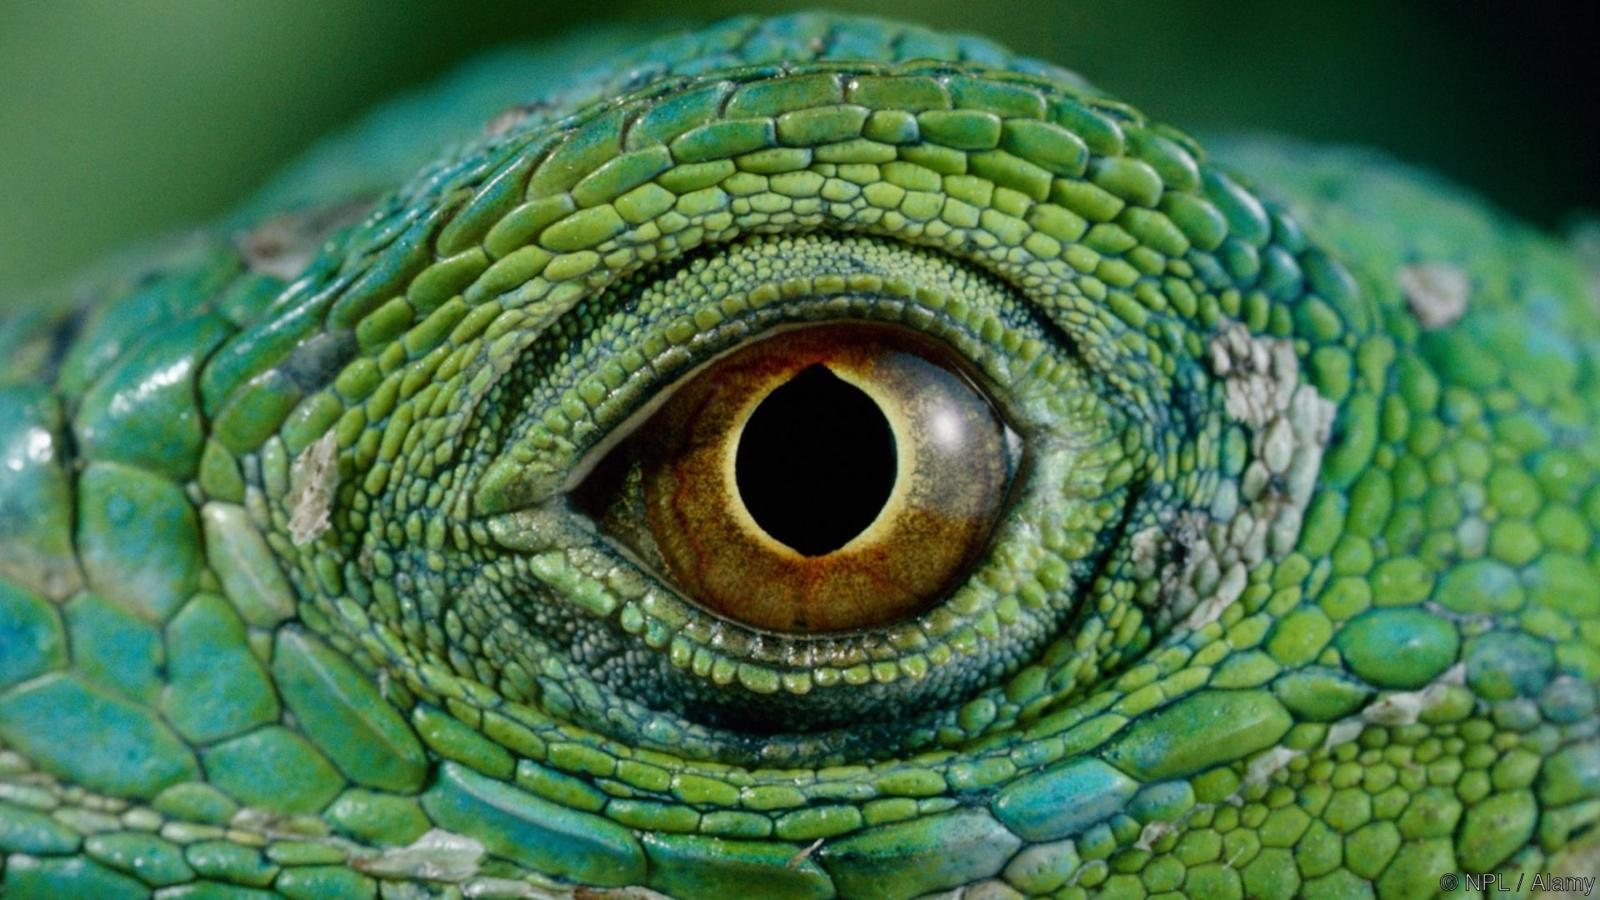 Close up of eye of Common green iguana (Iguana iguana)